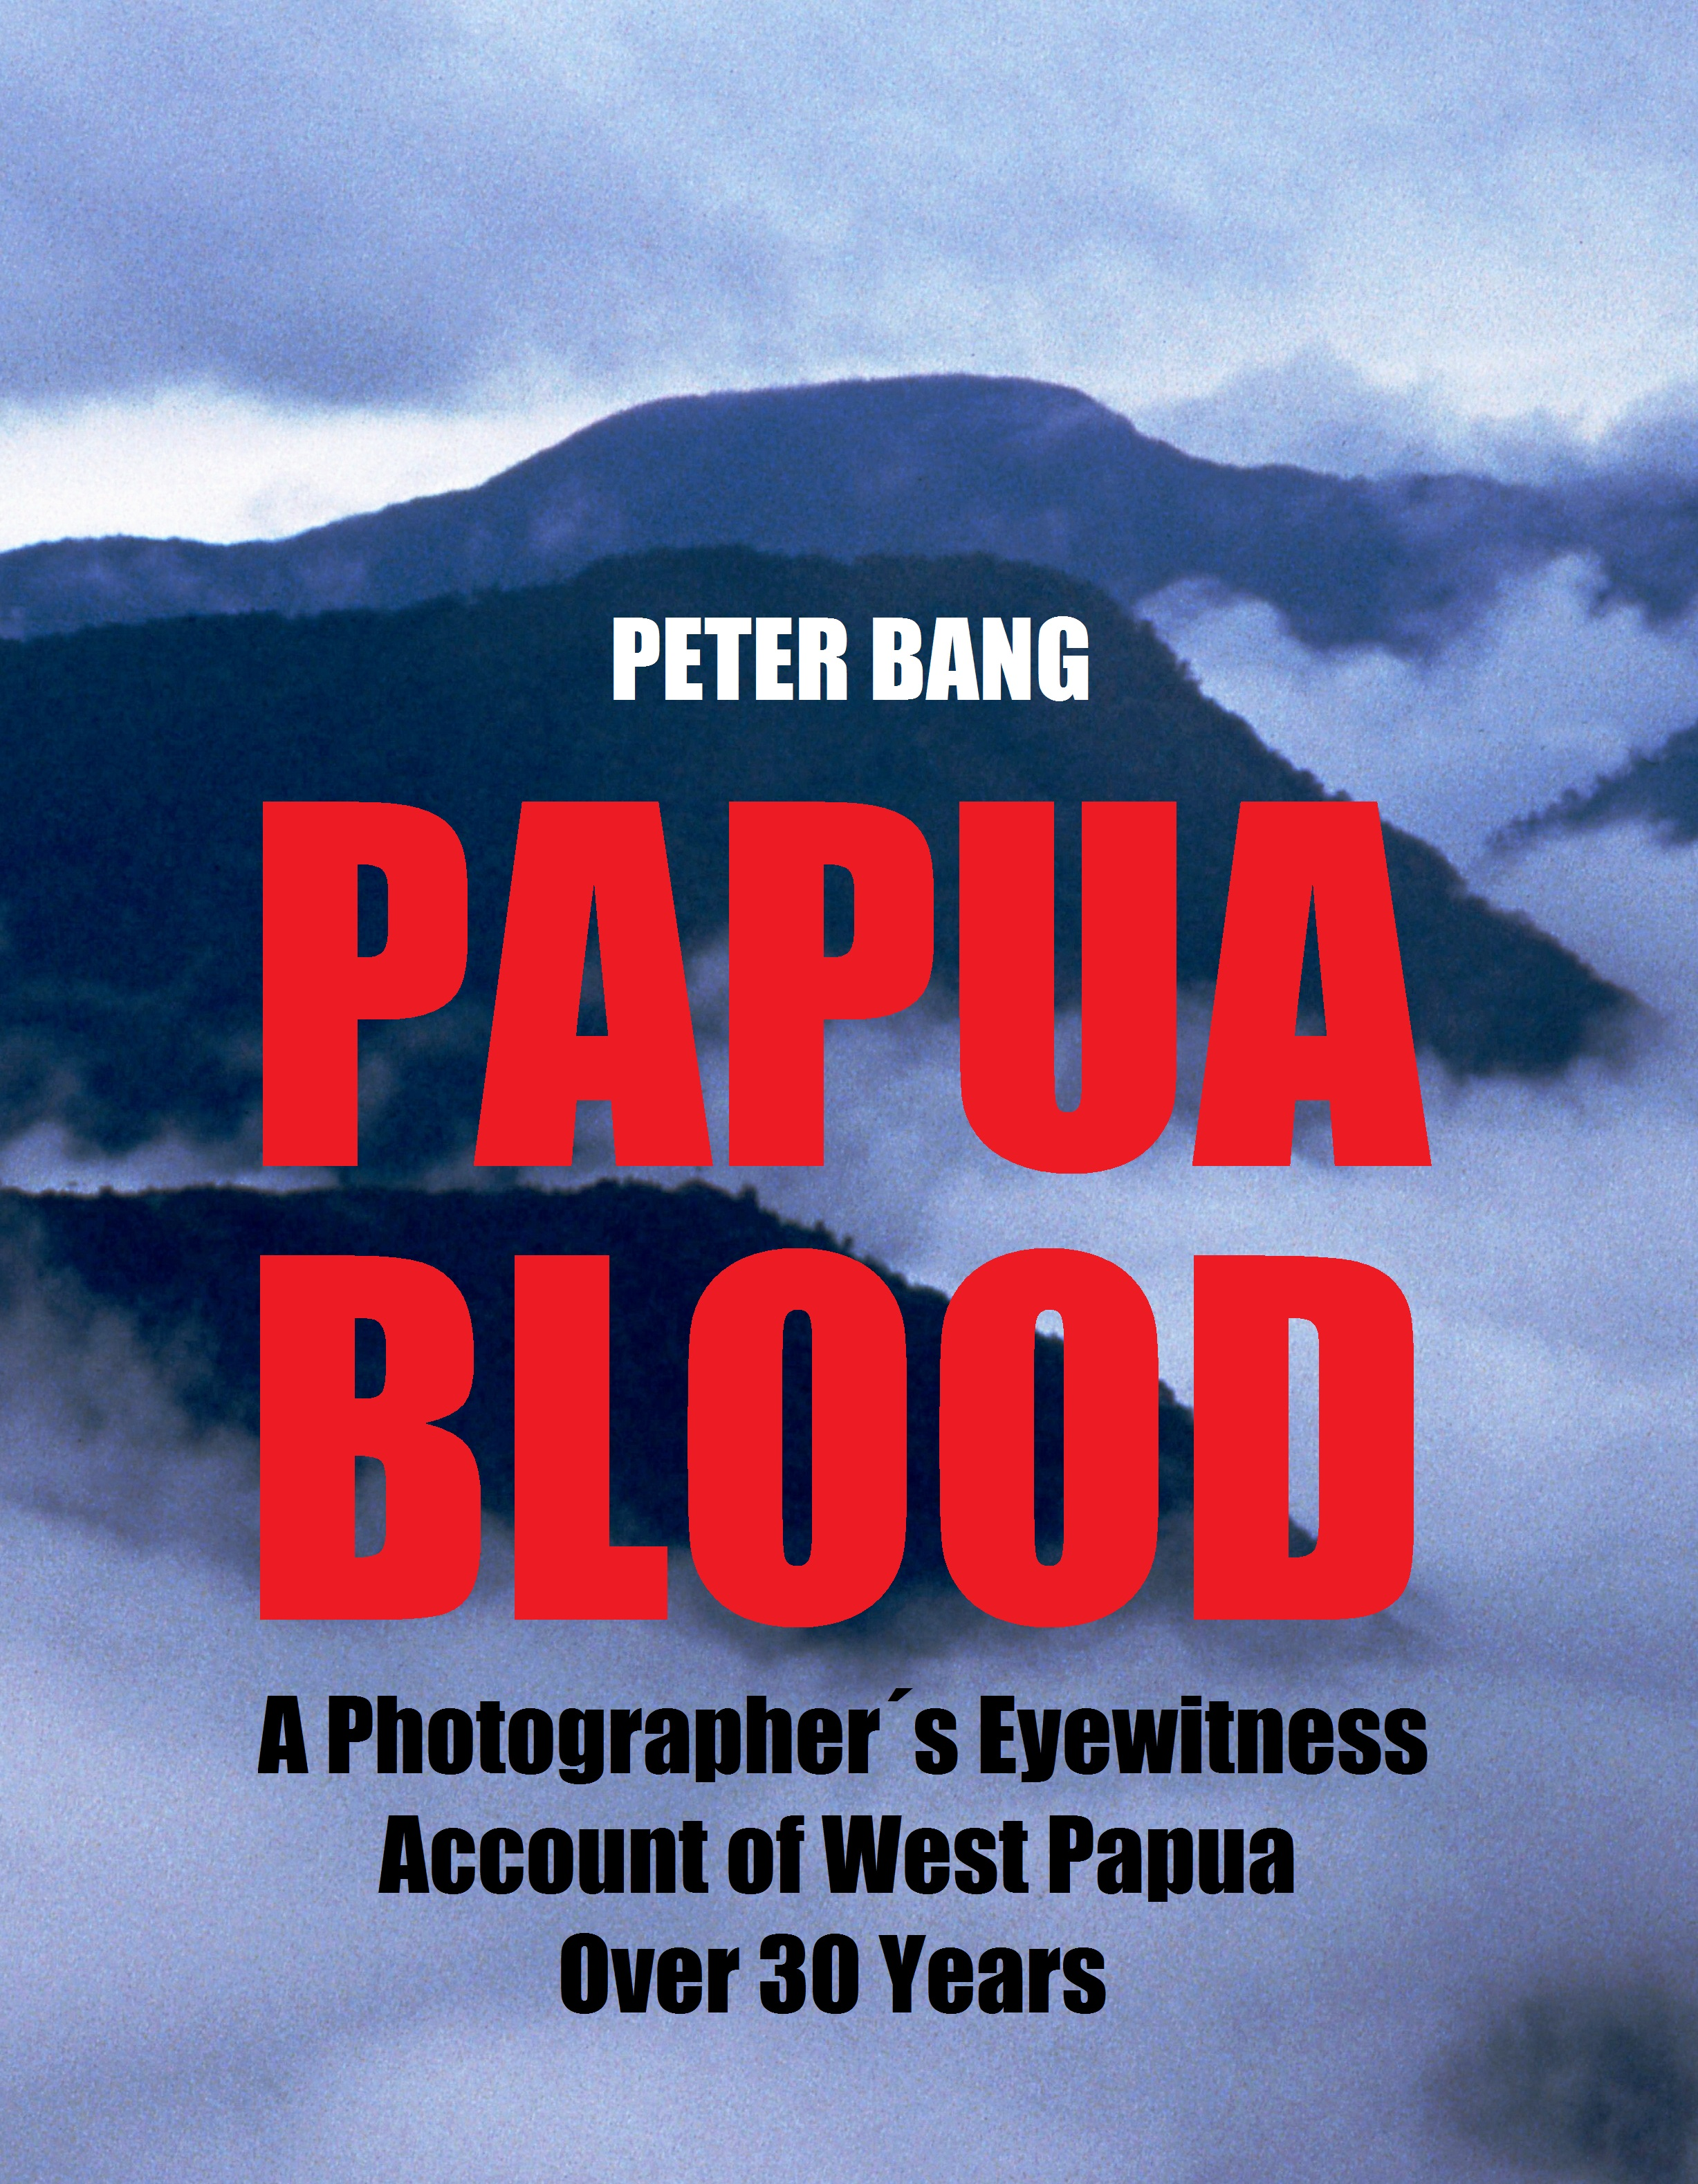 PAPUA BLOOD - A Photographer´s Eyewitness Account of West Papua Over 30 yearsby PETER BANGISBN 978-87-430-0101-0Size 17 x 22 cm. 248 pages. 200 photos.Published 2018 / Remote Frontlines.